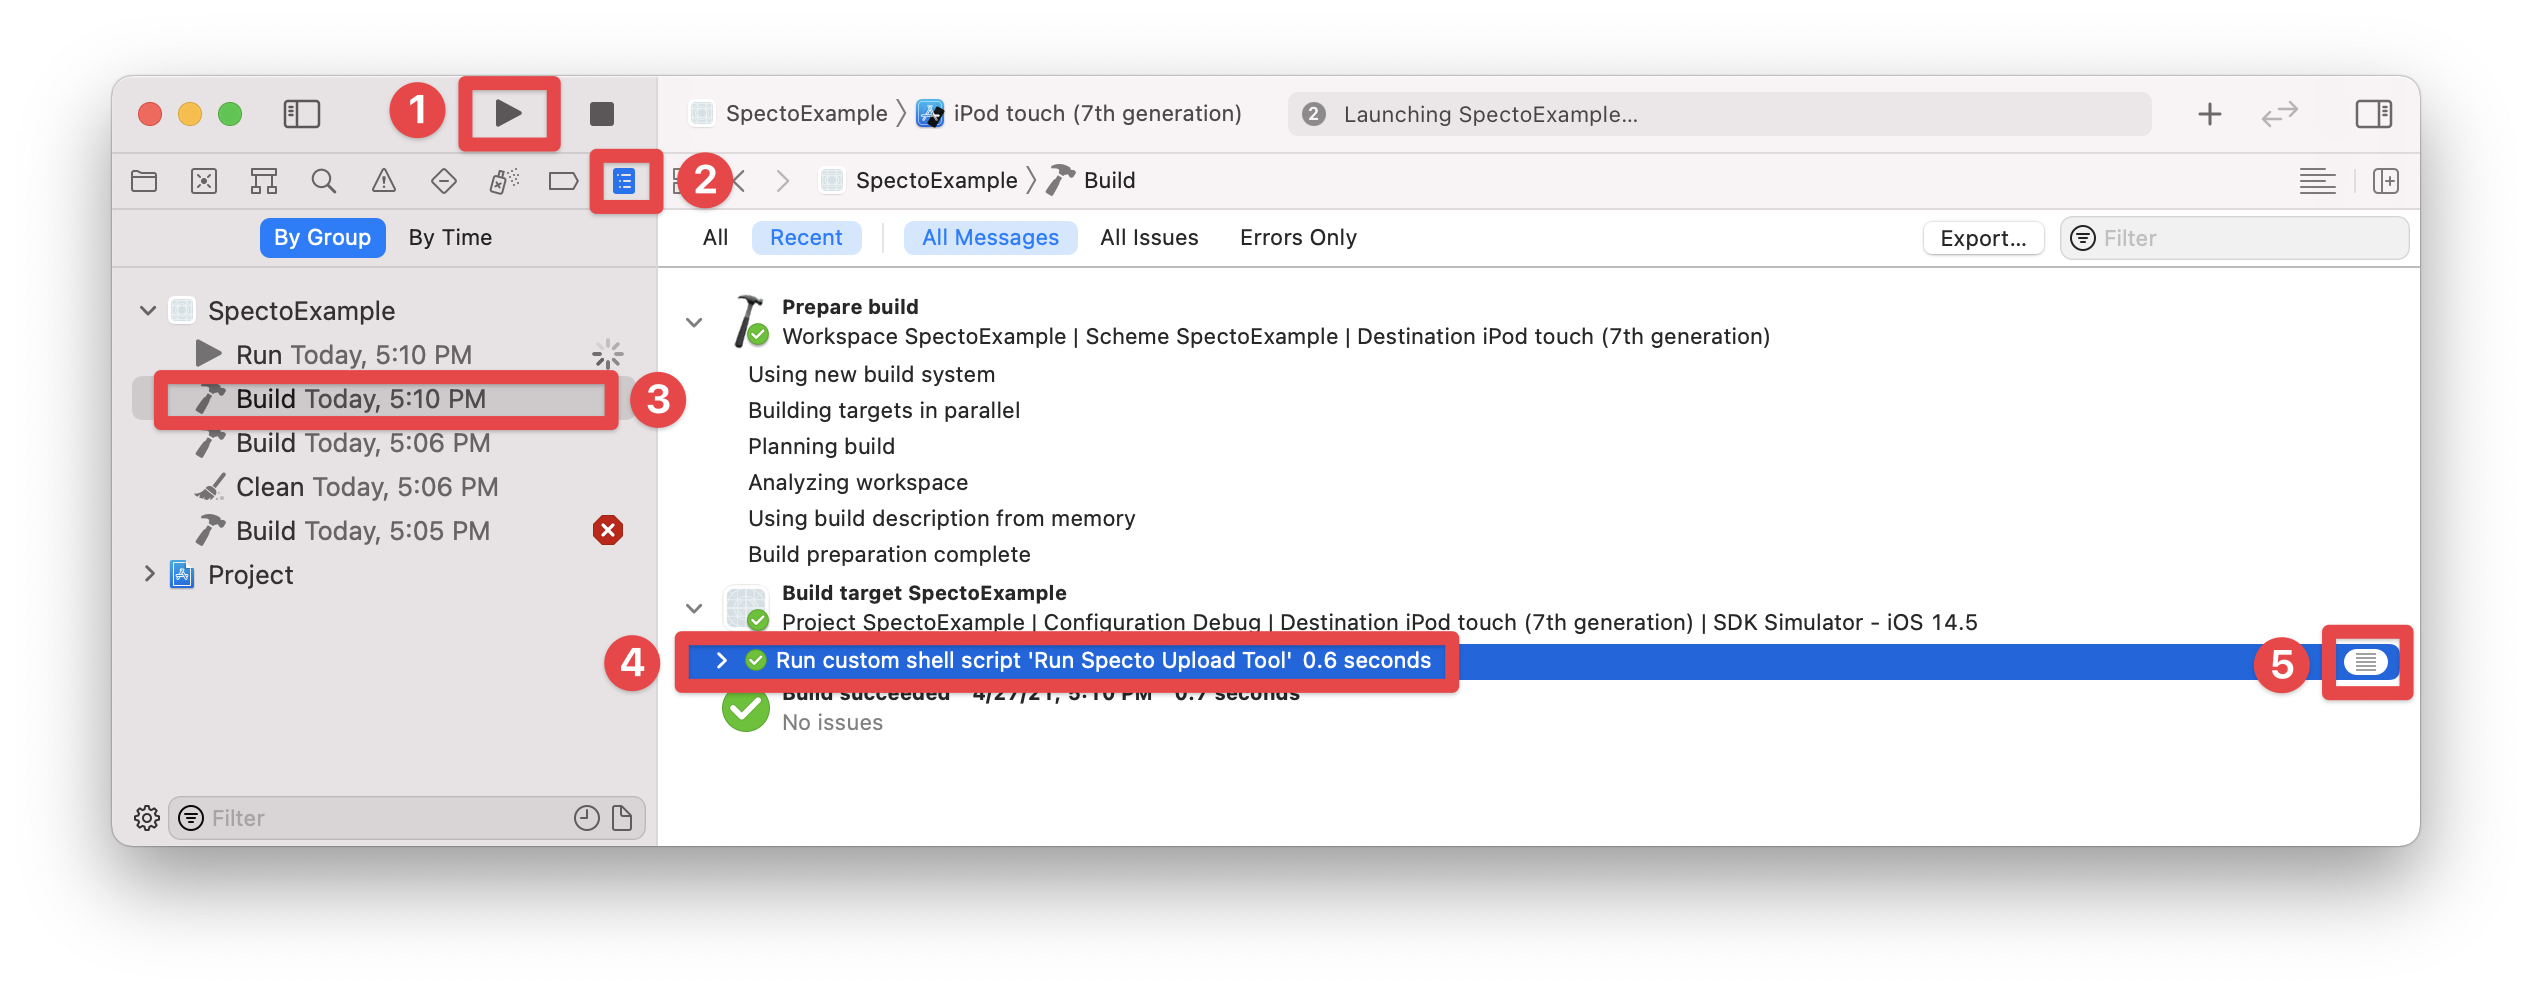 Building & running the app in Xcode, and viewing the build results (steps 1-5)